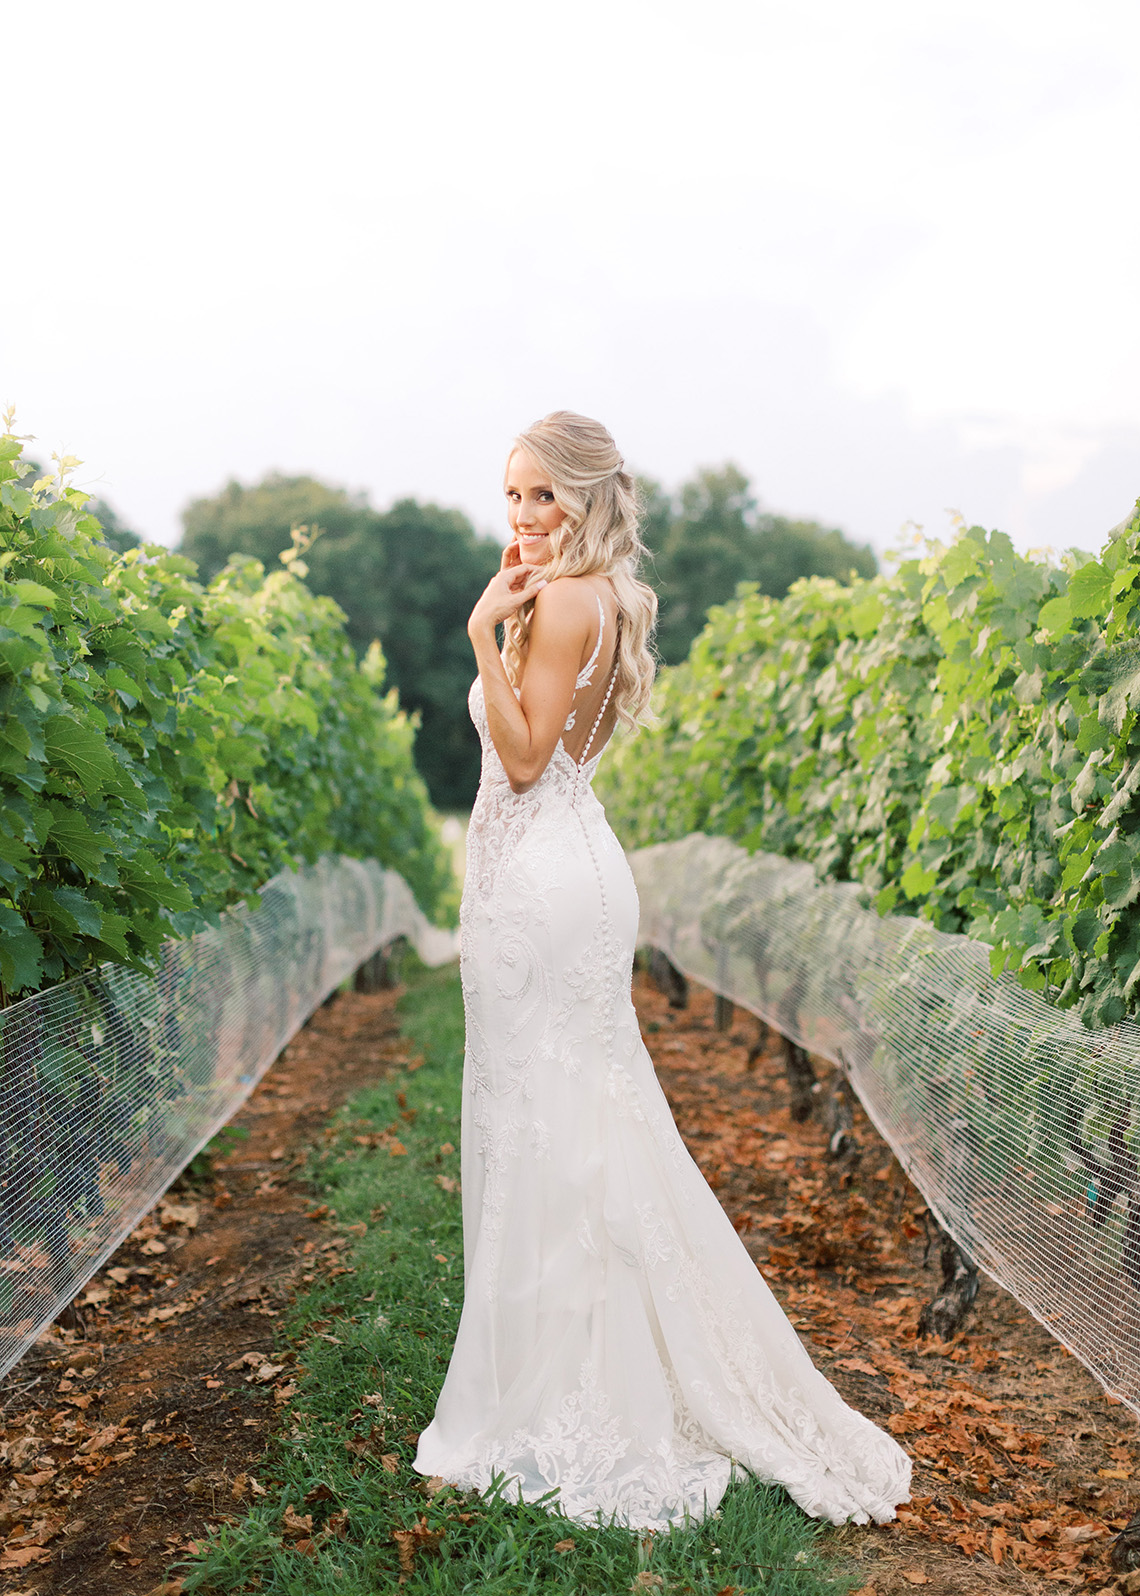 Lavish Southern Winery Wedding – Molly Lichten Photography 41